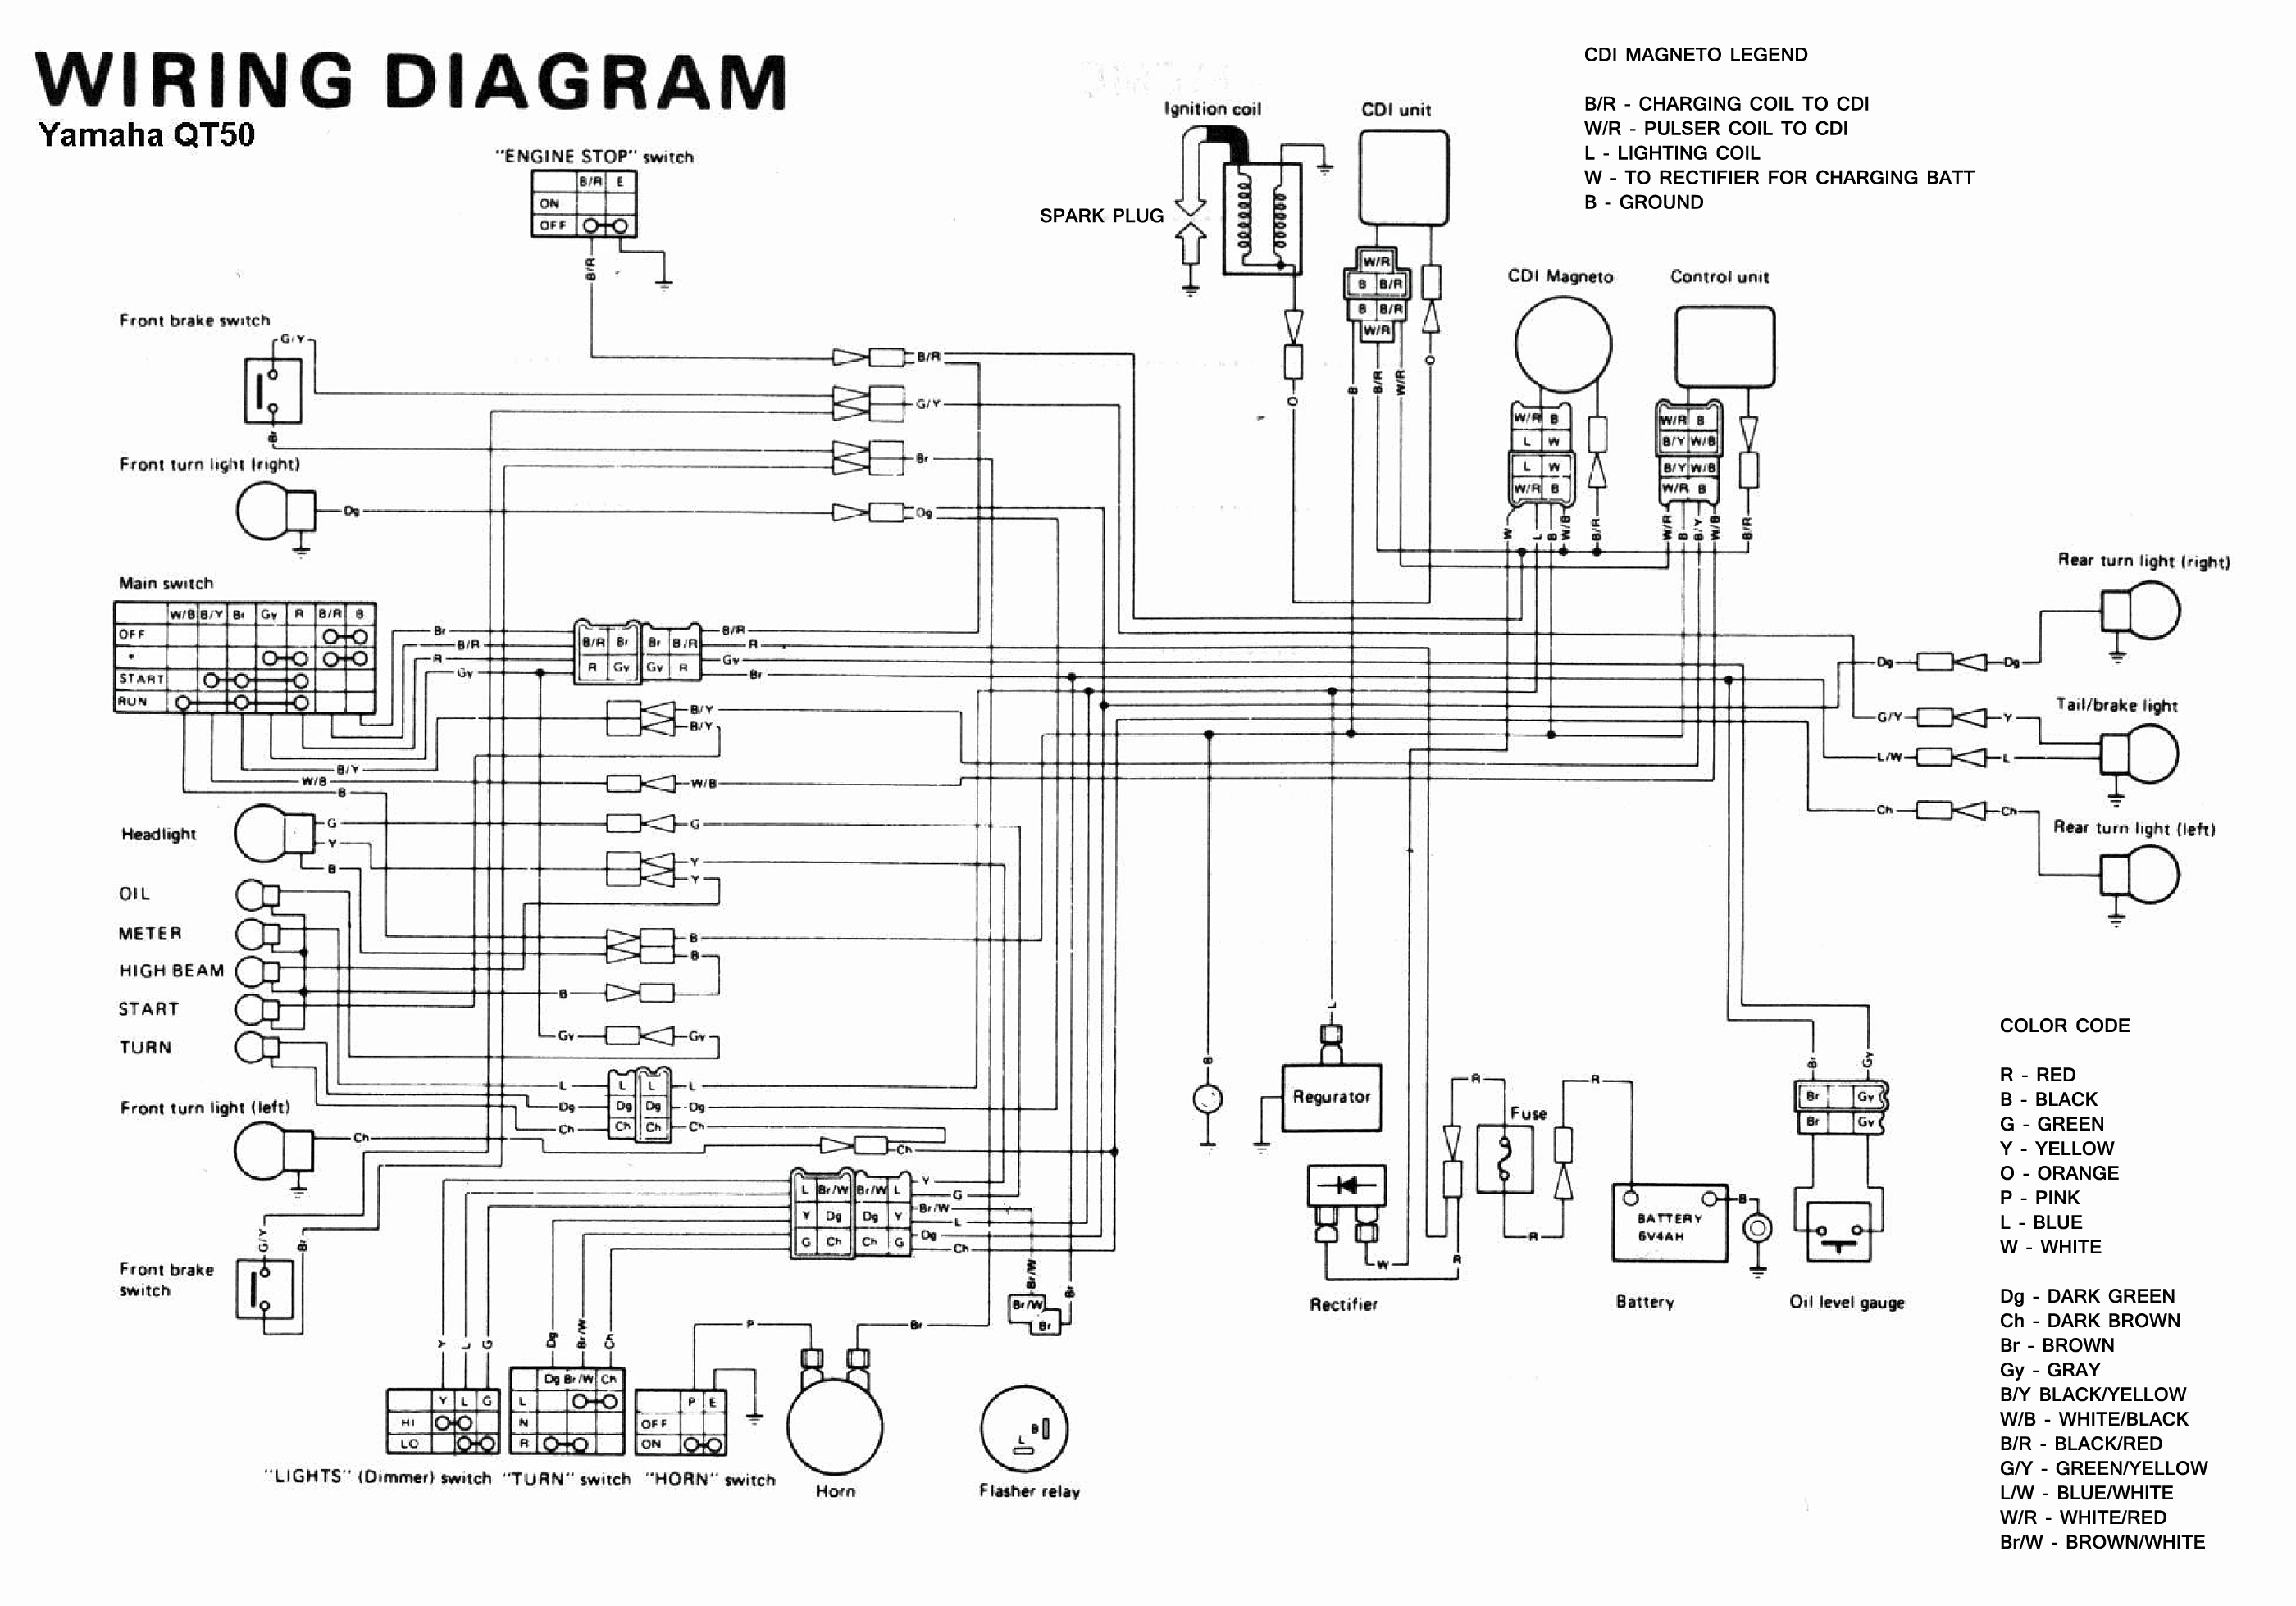 diagram] yamaha warrior wiring diagram full version hd quality wiring  diagram - wiringsafem.lacantinadeipescatori.it  lacantinadeipescatori.it